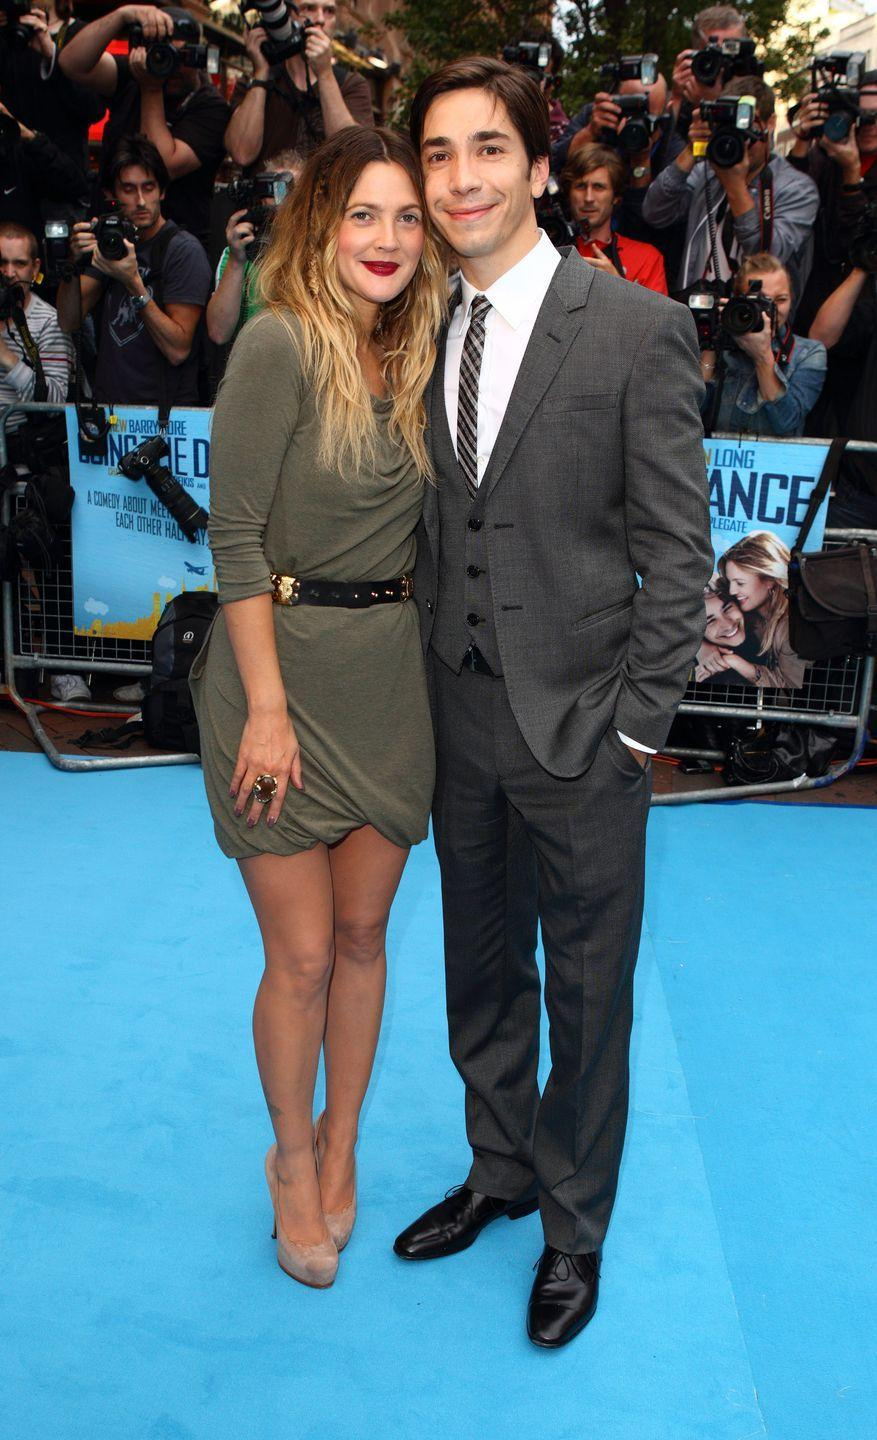 <p>Drew Barrymore and Justin Long started dating in 2007, after meeting on set for <em>He's Just Not That Into You.</em> The relationship lasted just a year and they broke up in 2008. Despite splitting up, the pair had rekindled their romance on-screen for the 2010 film <em>Going the Distance. </em></p>